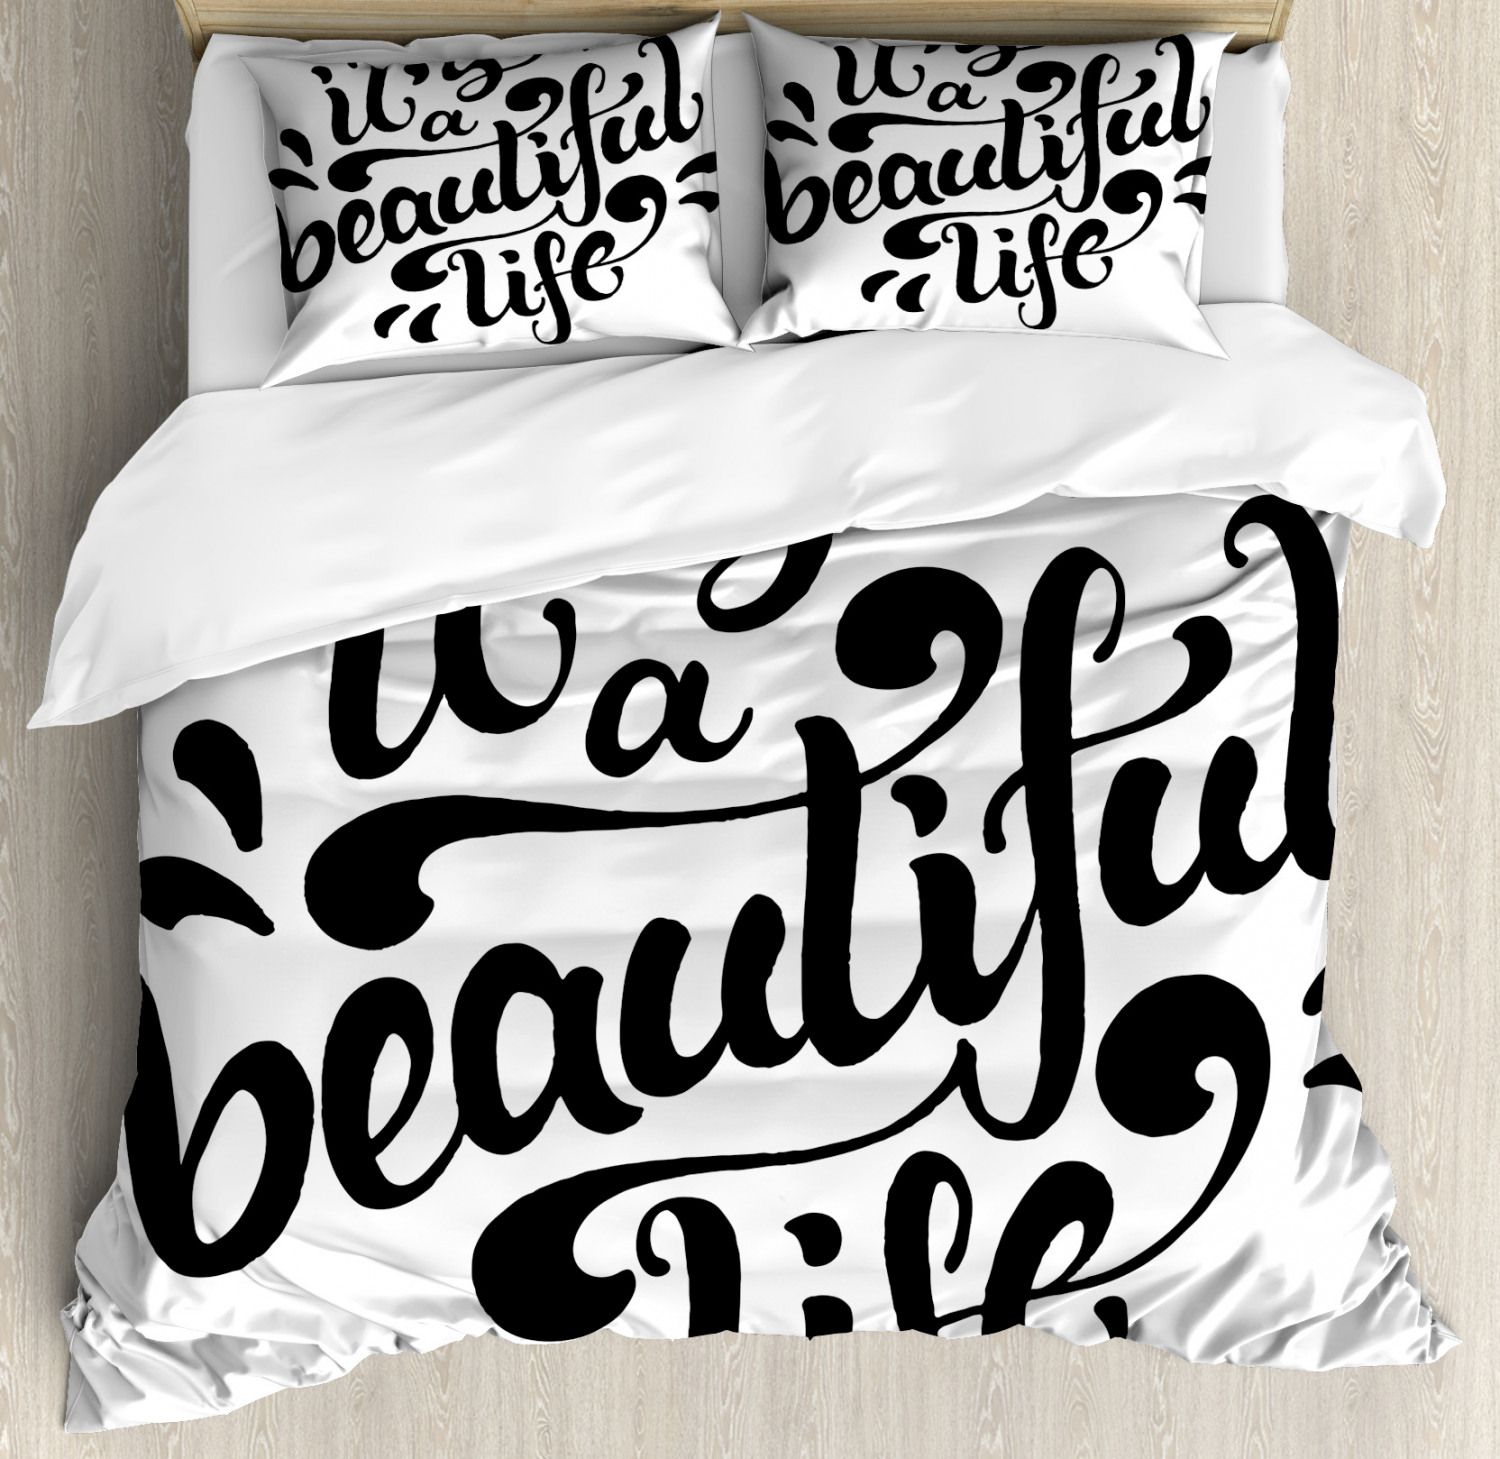 Inspirational Duvet Cover Set Positive Life Quote Hand Drawn Calligraphic Lettering Optimistic Message Decorative Bedding Set With Pillow Shams Black And White By Ambesonne Walmart Com Walmart Com